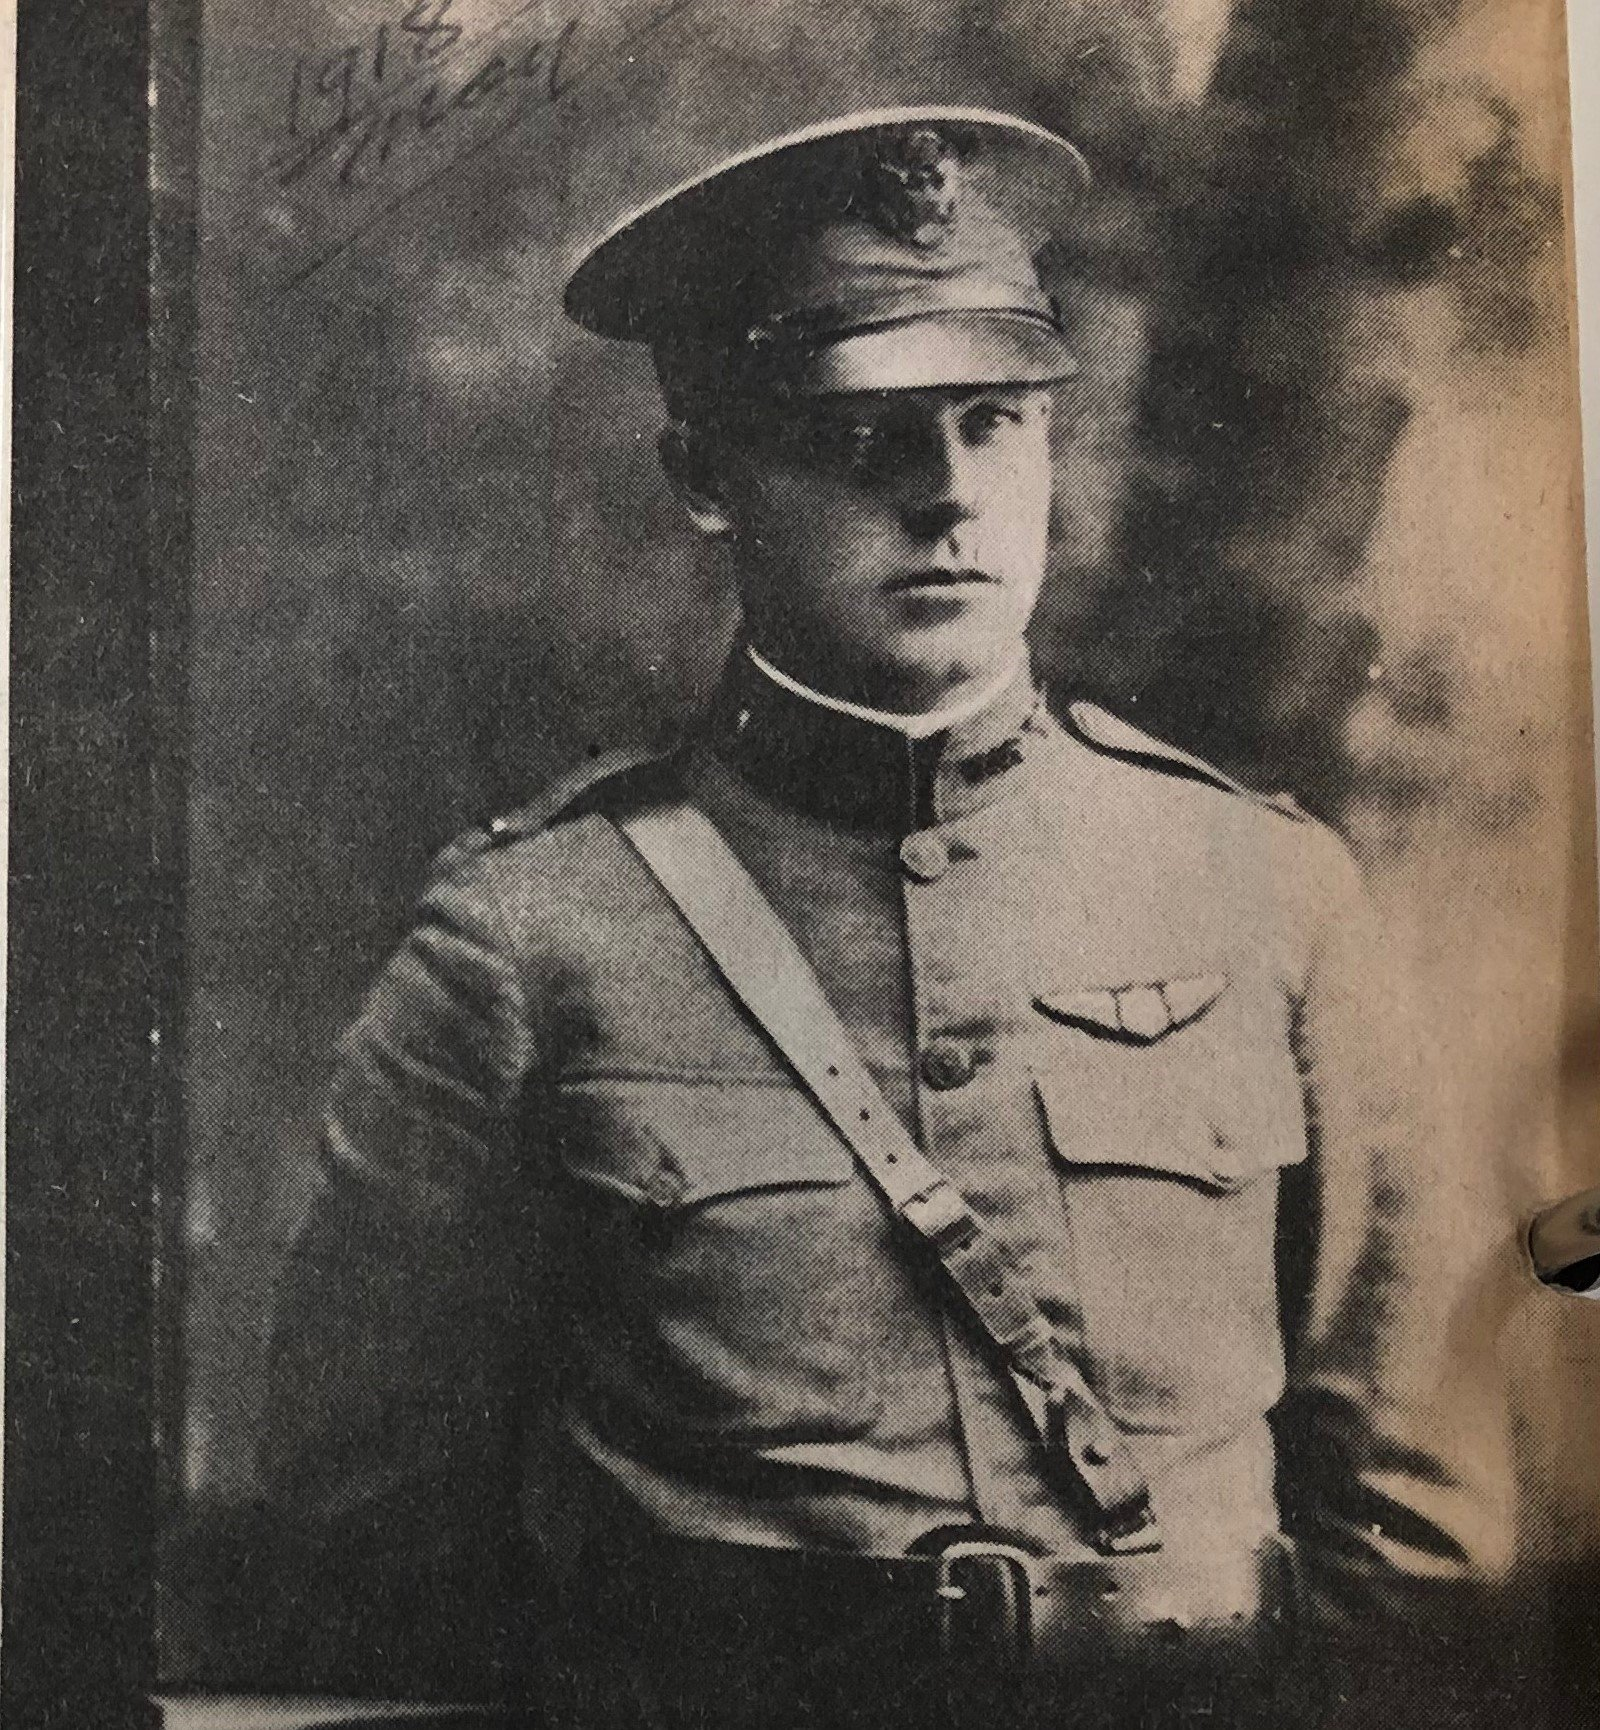 Frank Roberts, wearing an M1912 U.S. Army officer's garrison cap.